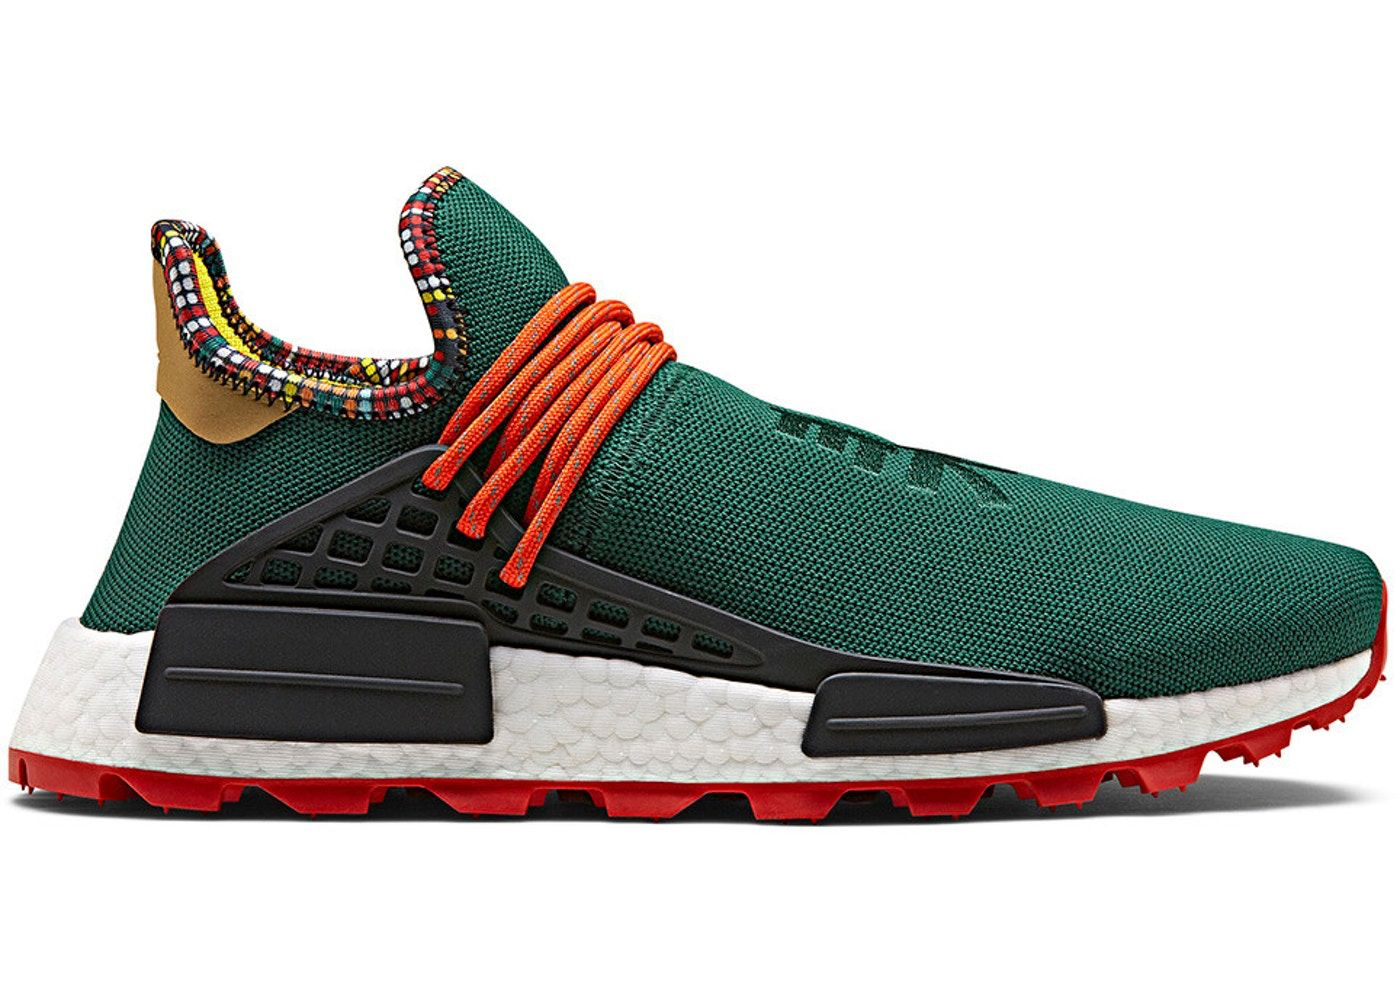 37f28c55 Check out the adidas NMD Hu Pharrell Inspiration Pack Green available on  StockX